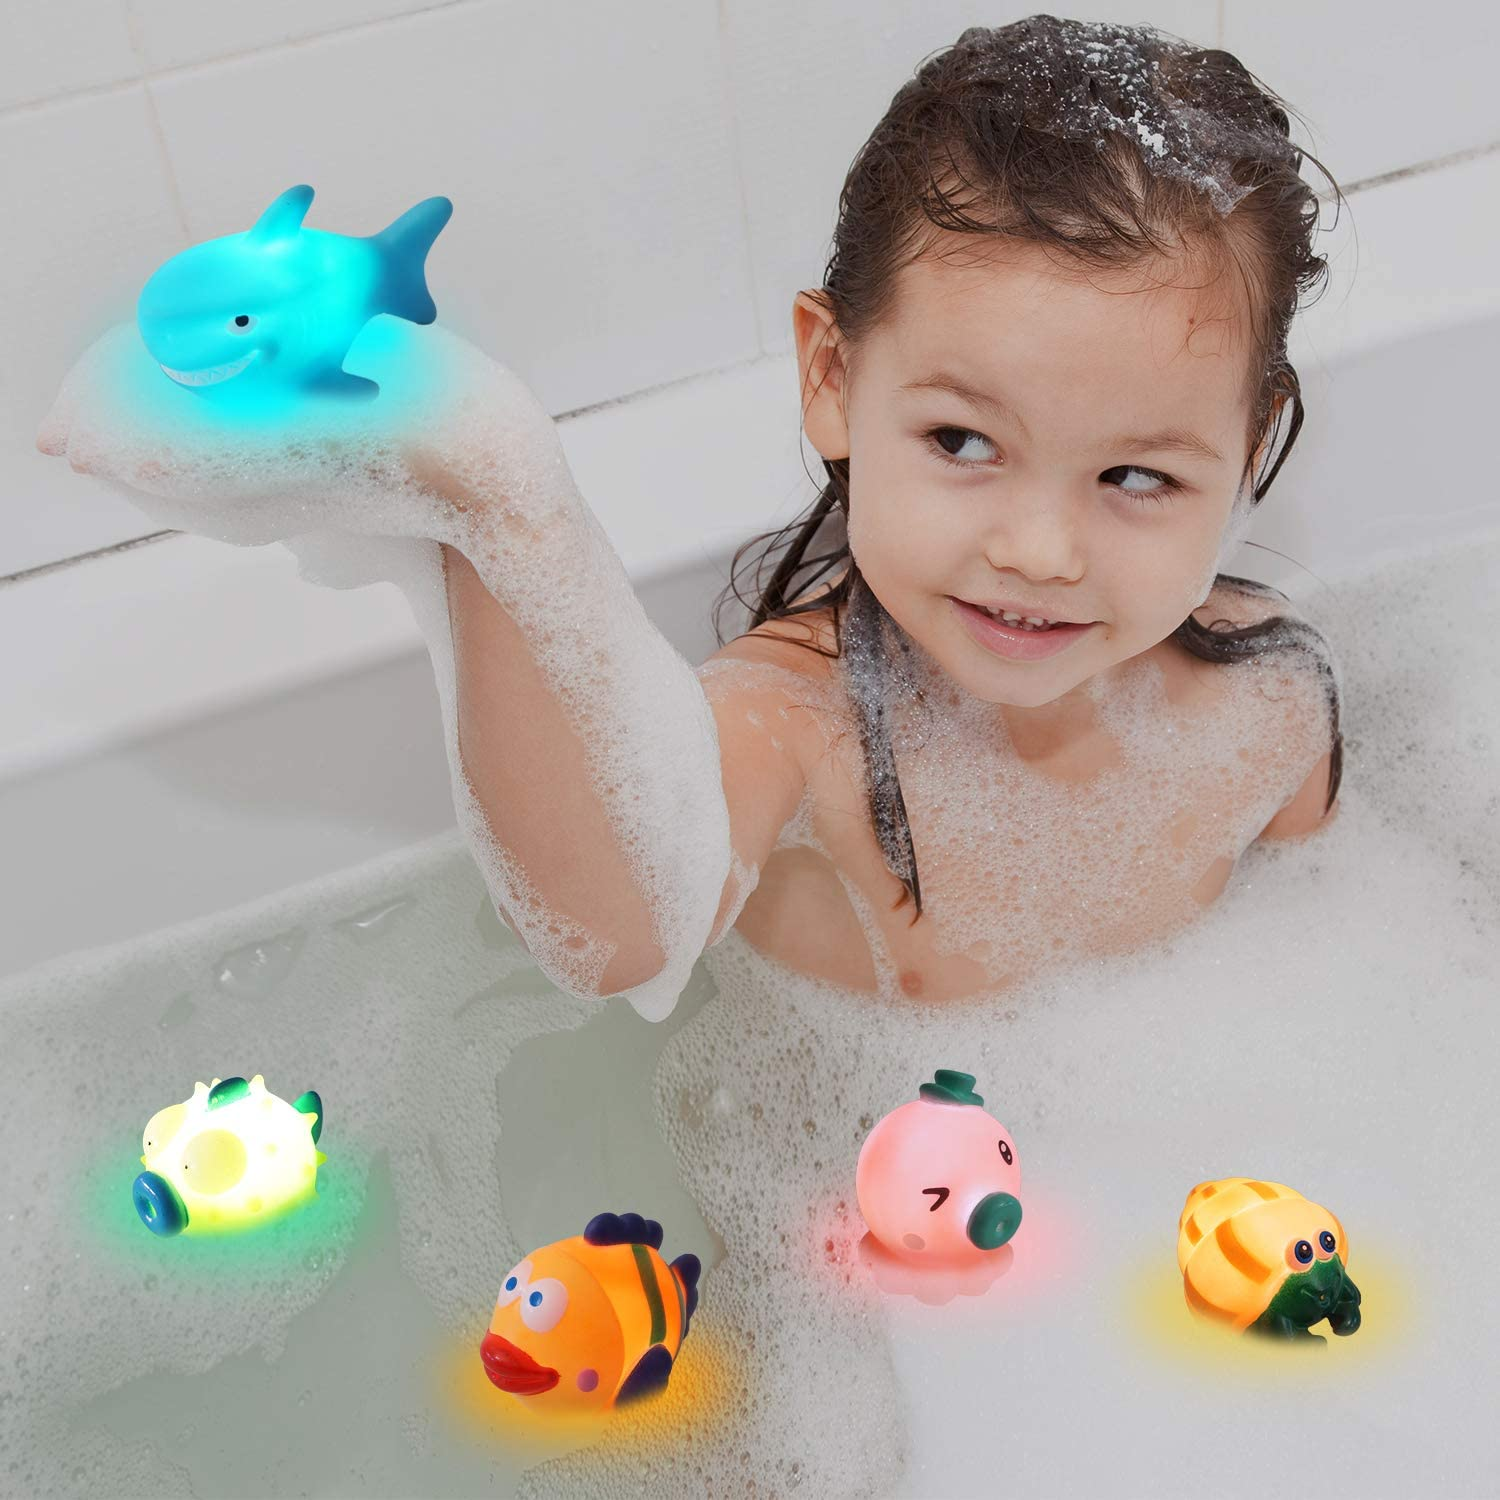 6 Packs Baby Toys for Bath Bath Toys for 1 Year Old Toddlers Baby Bath Toys Floating Toys with Flashing Colourful LED Light for Toddlers Boys Girls Age 1 2 3 4 Light Up Water Toys Set for Kids